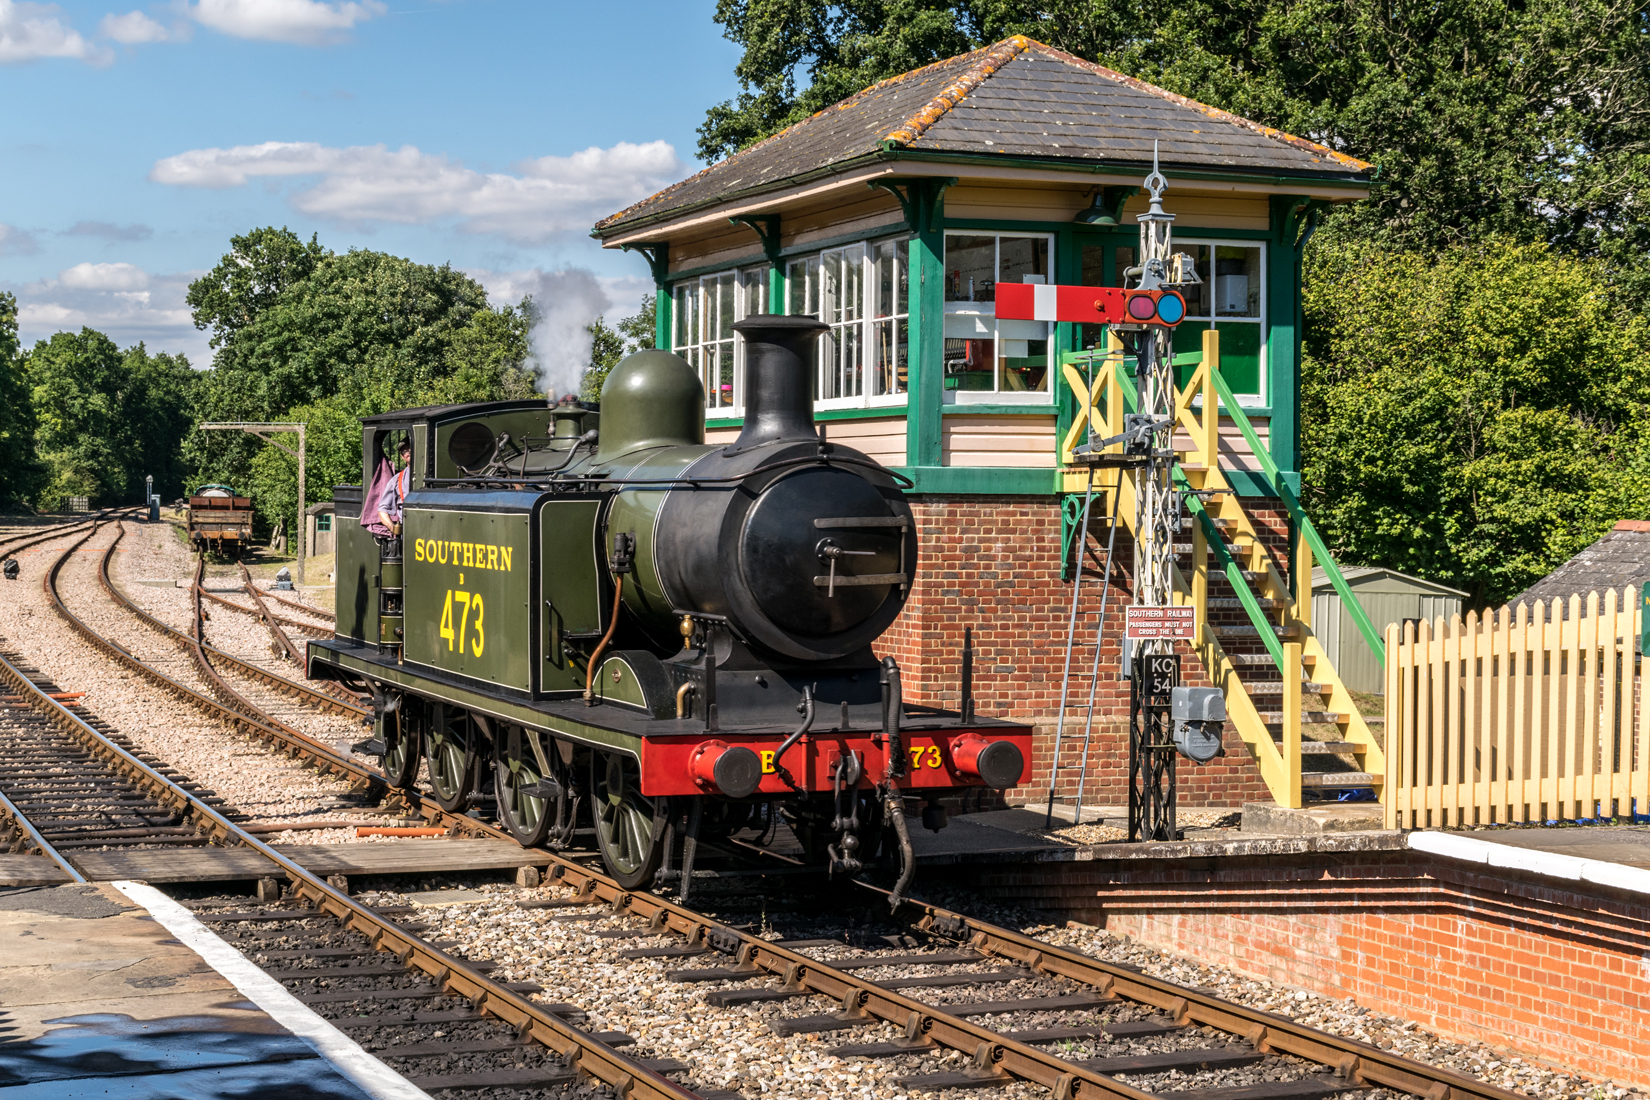 B473 pausing at Kingscote station signal box before completing its run around the goods wagons